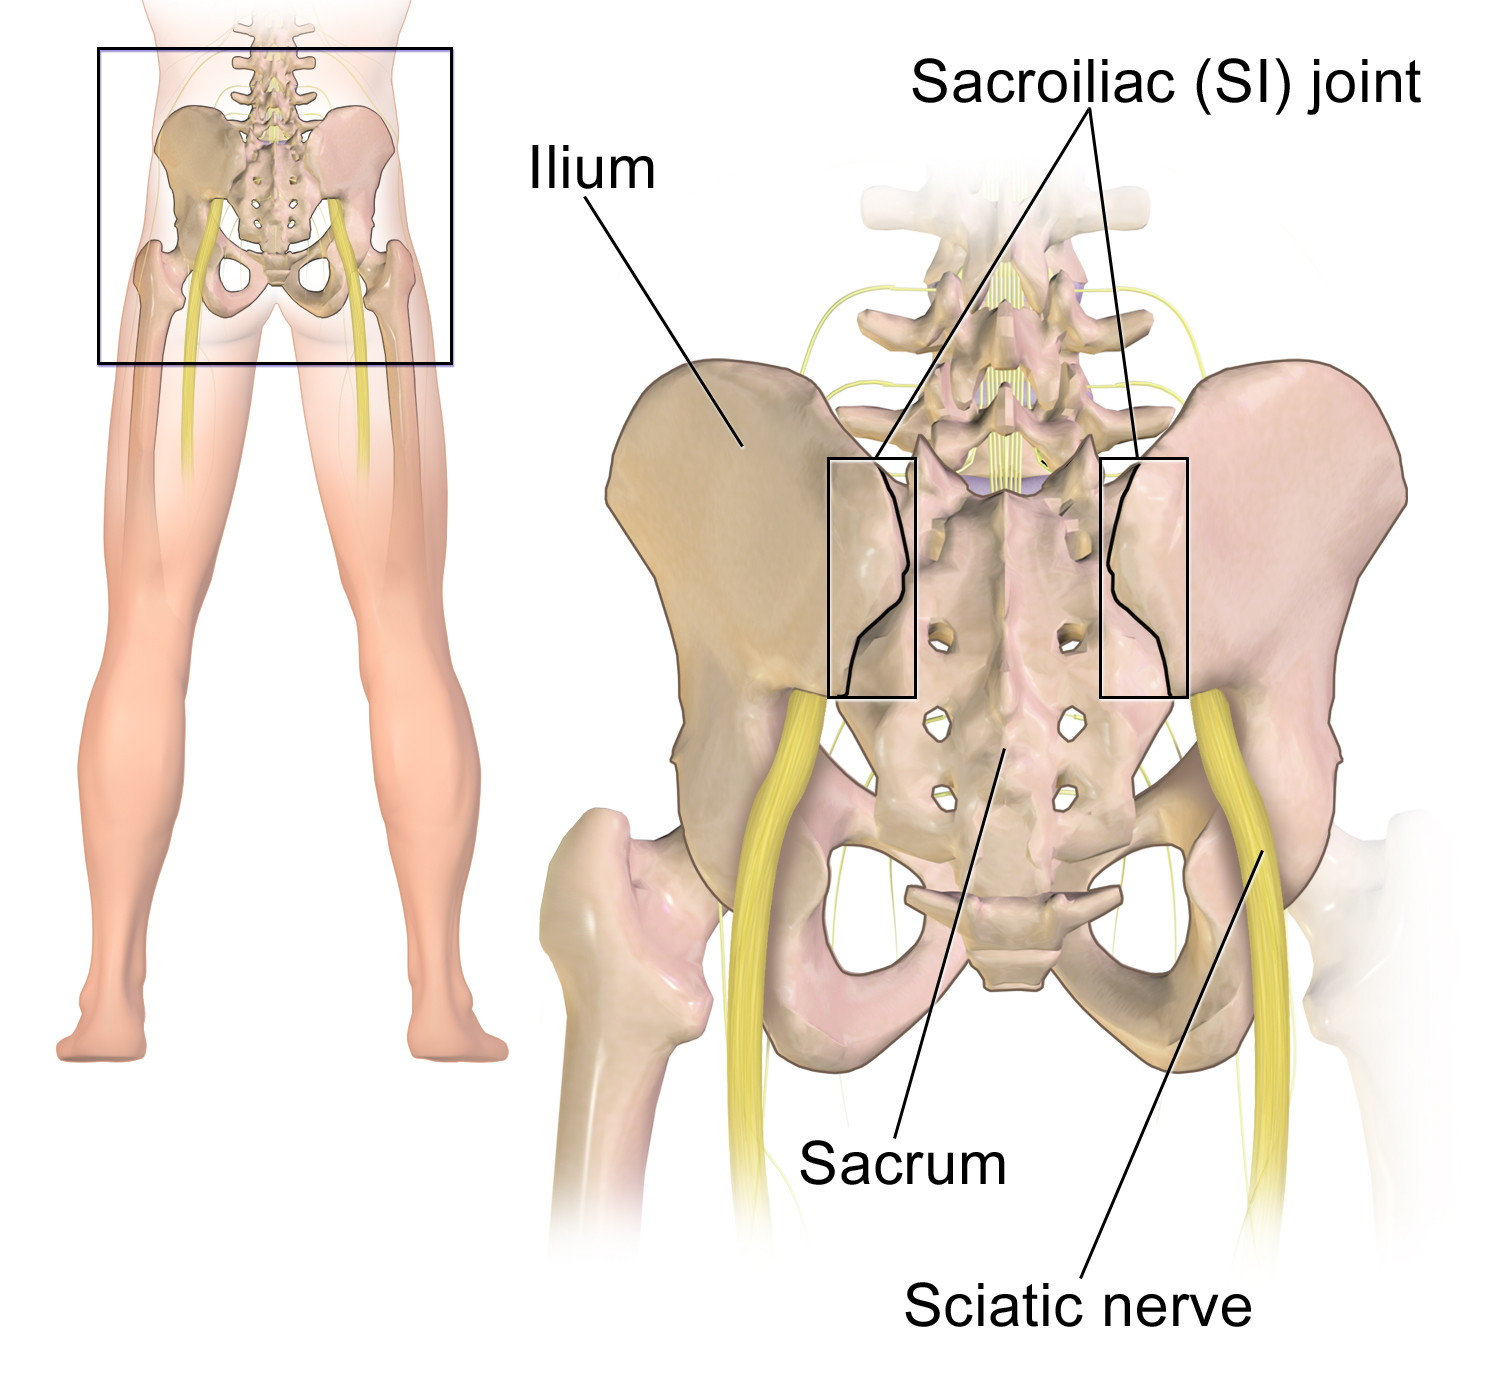 Si joint pain